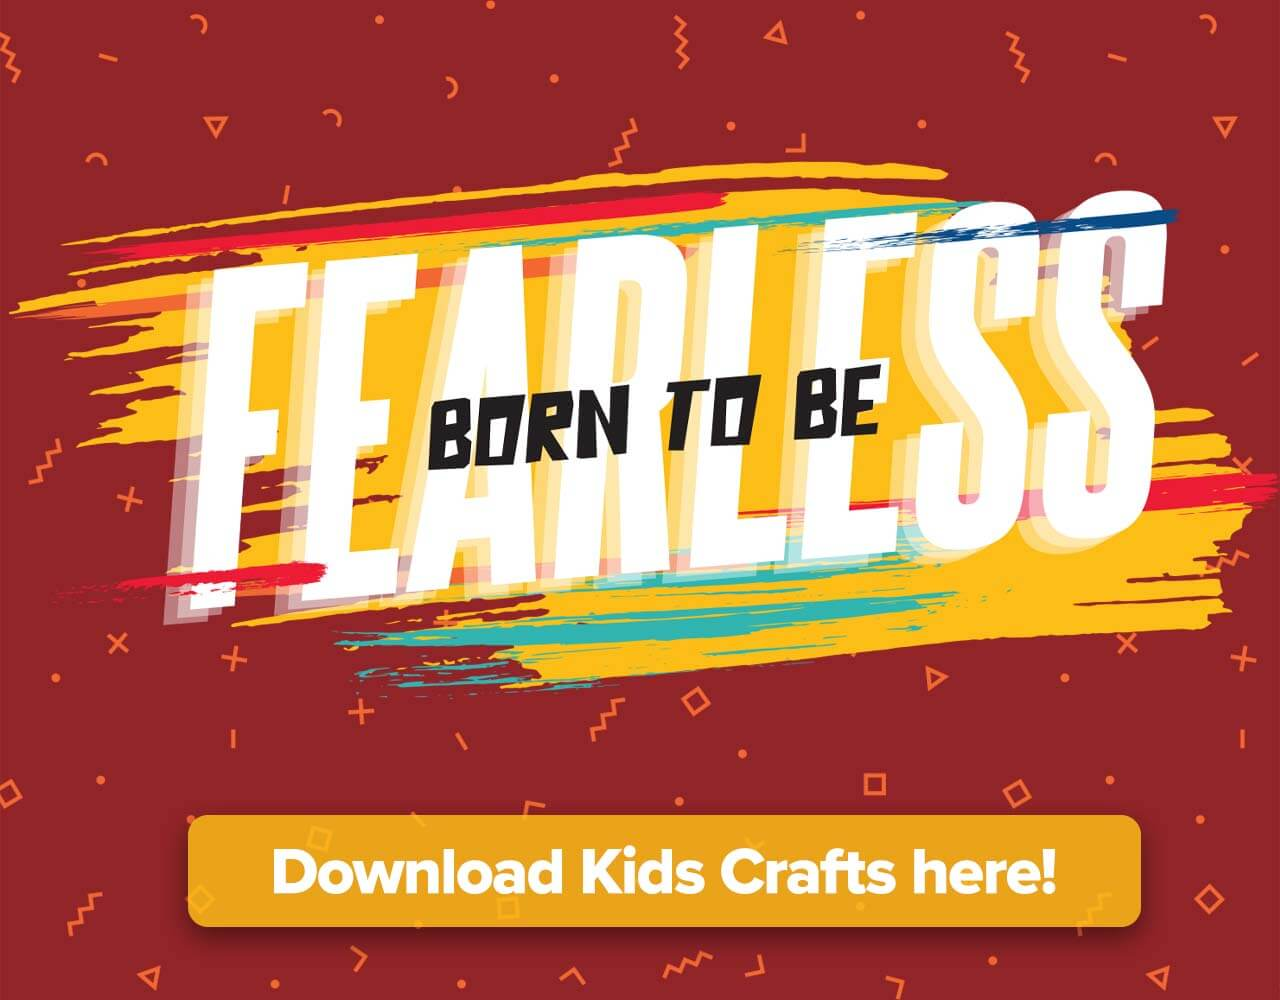 Download Kids crafts here!